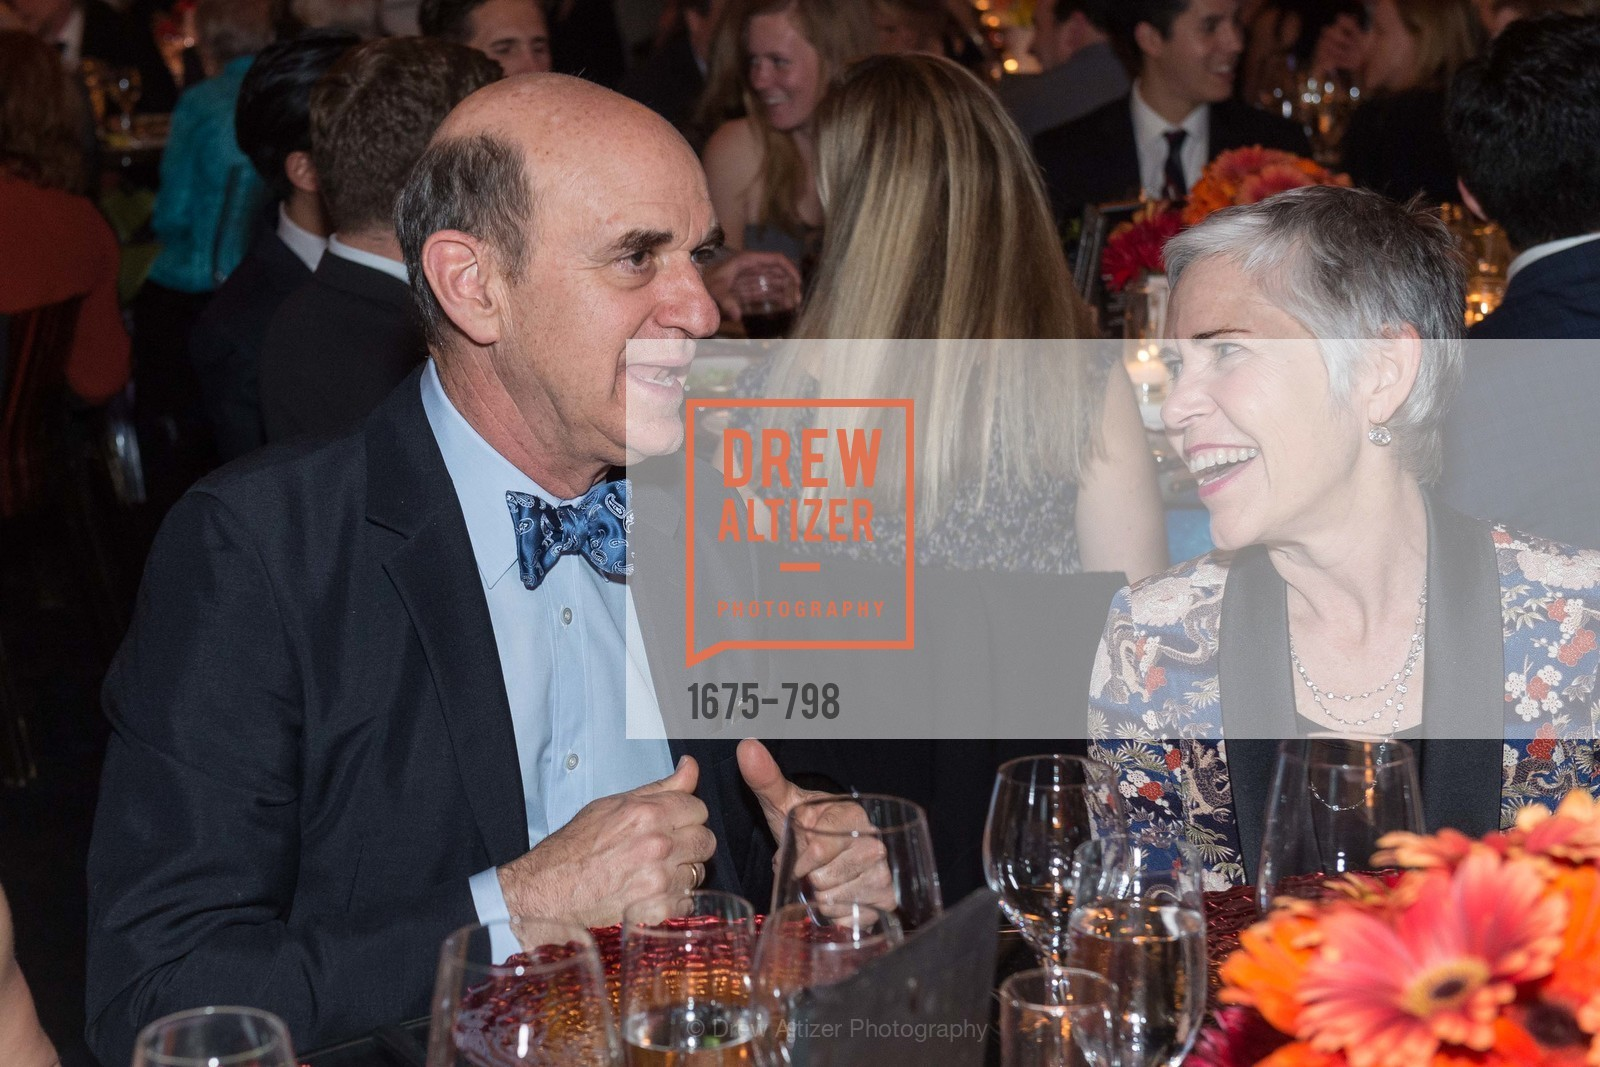 Bob Fisher, Laura Lazarus, CALIFORNIA ACADEMY OF SCIENCES - Big Bang Gala 2015, US, April 23rd, 2015,Drew Altizer, Drew Altizer Photography, full-service agency, private events, San Francisco photographer, photographer california